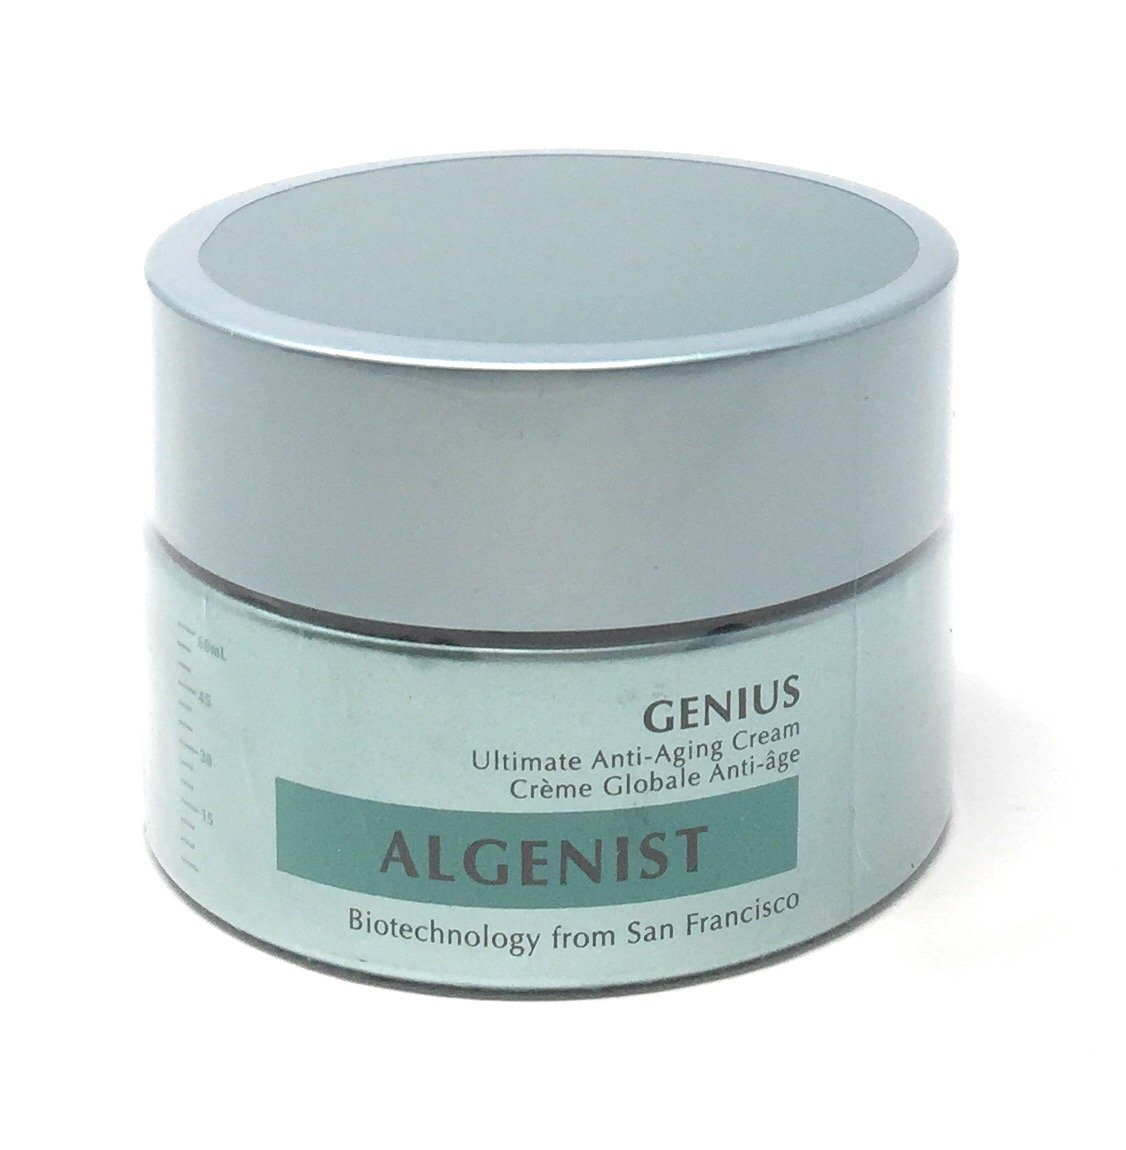 Algenist Genius Ultimate Anti-Aging Cream for Unisex, 2 Ounce by Algenist